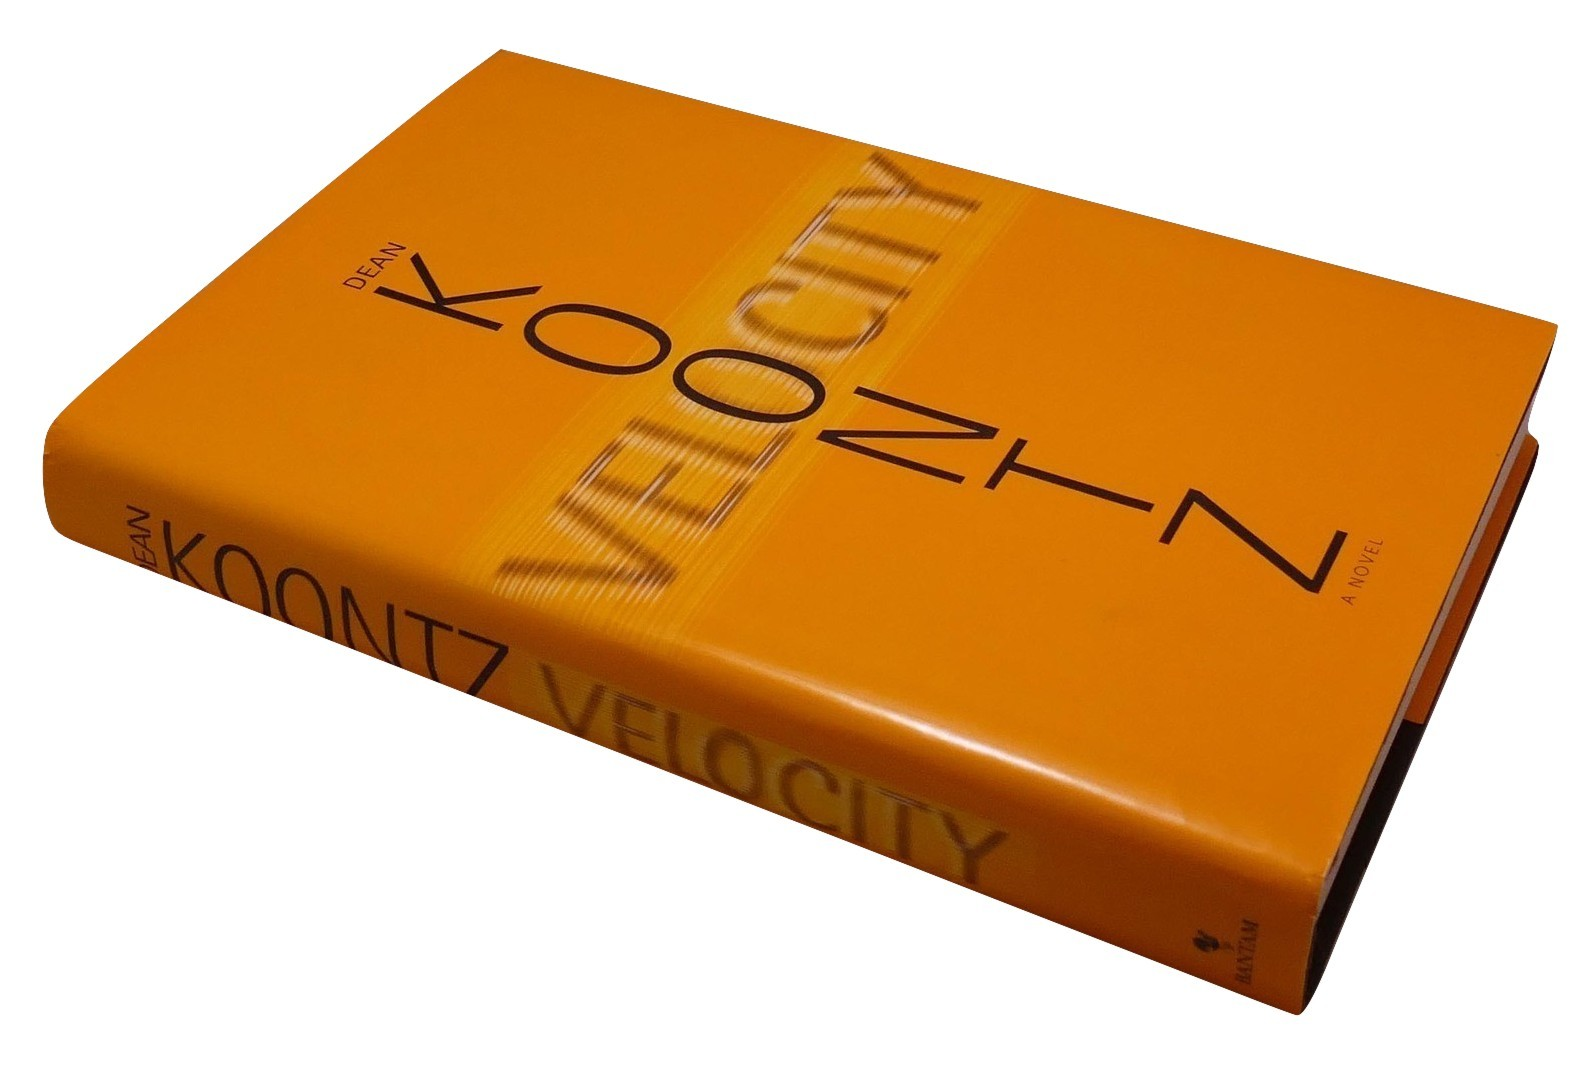 Primary image for Velocity by Dean Koontz 2005 Hardcover Book Fiction